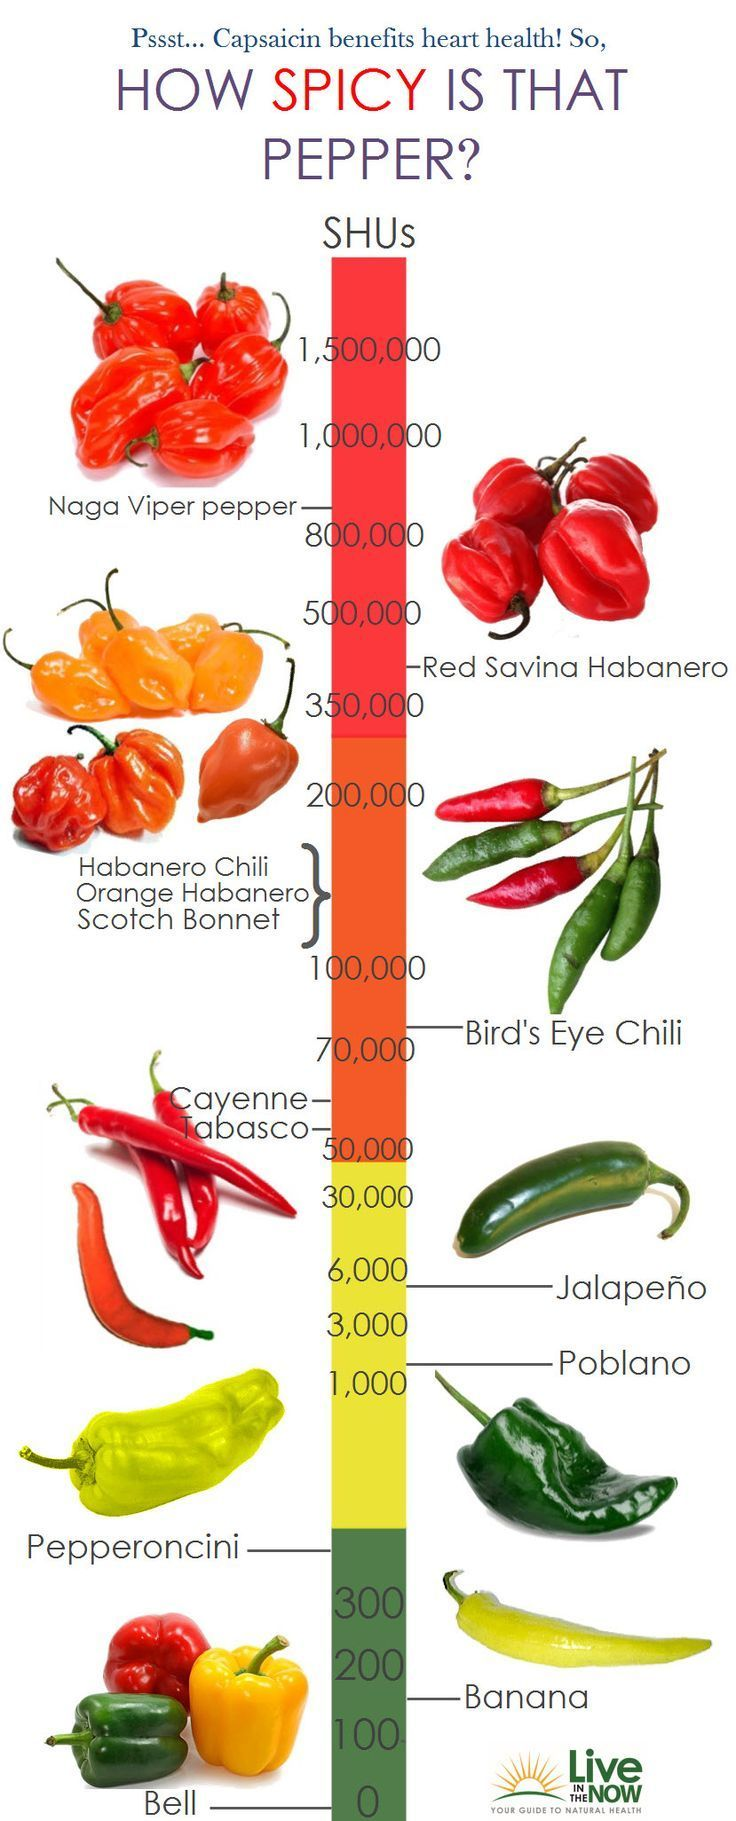 Infographic: Capsaicin Levels of Peppers for Heart Health   Live in the Now   Natural Health News   Natural Health Resources